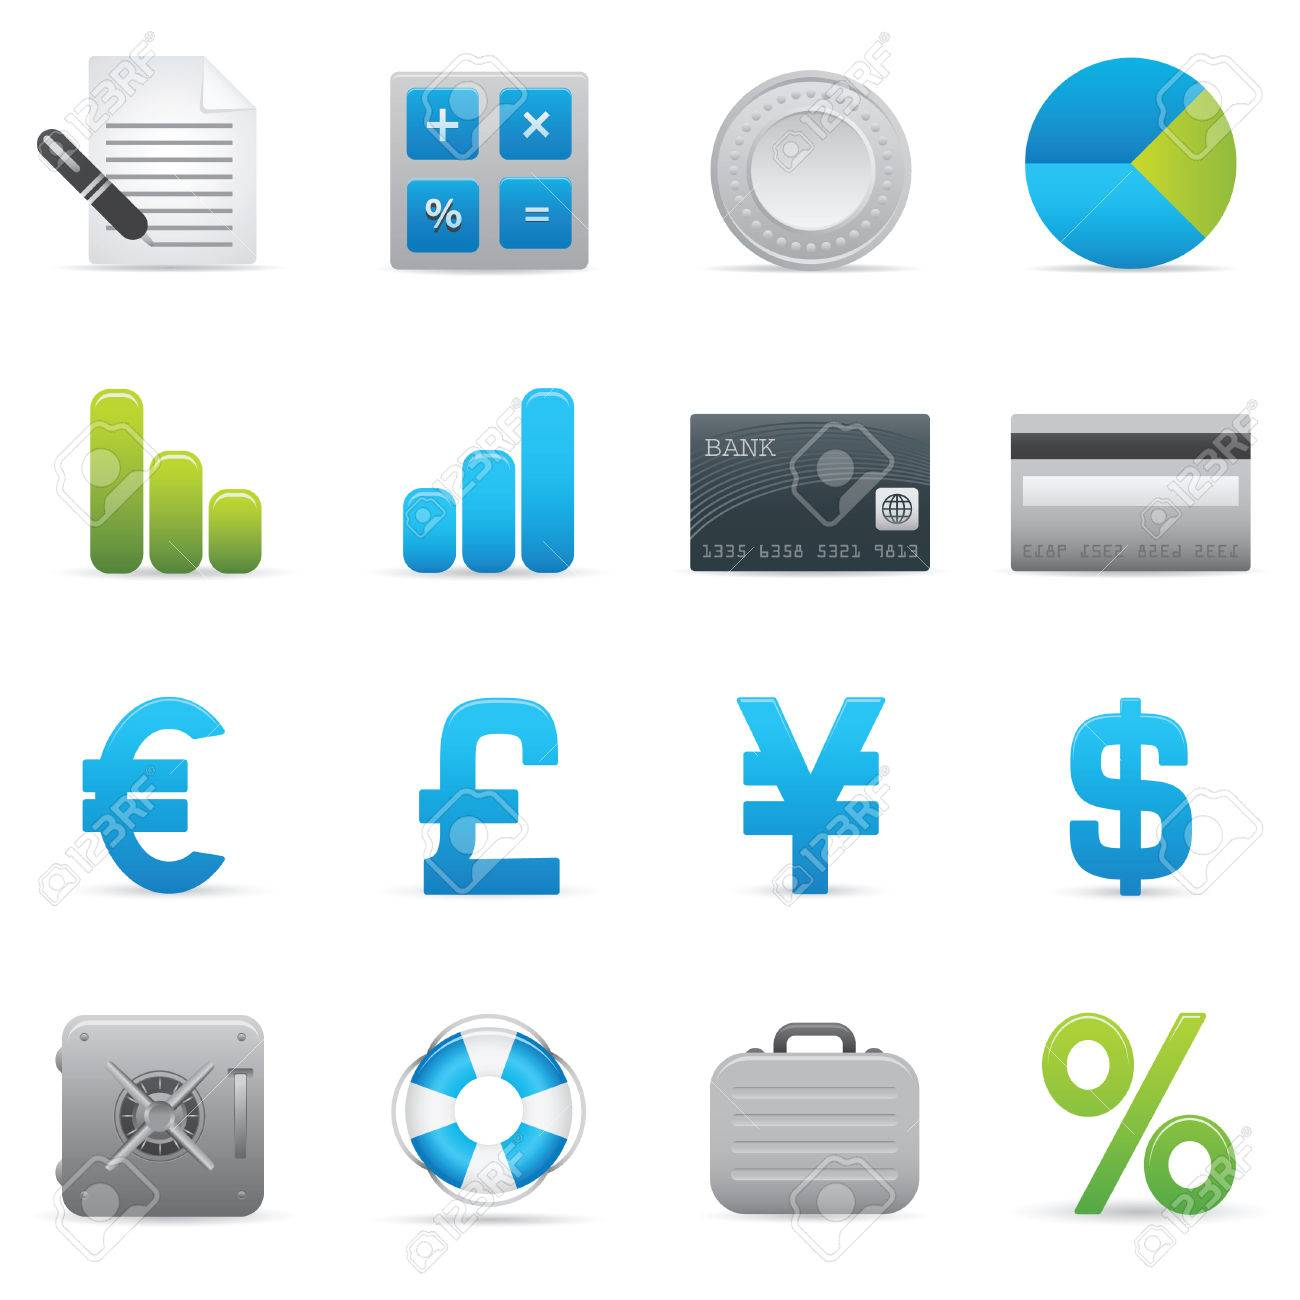 Professional icons for your website, application, or presentation. Stock Vector - 7310796